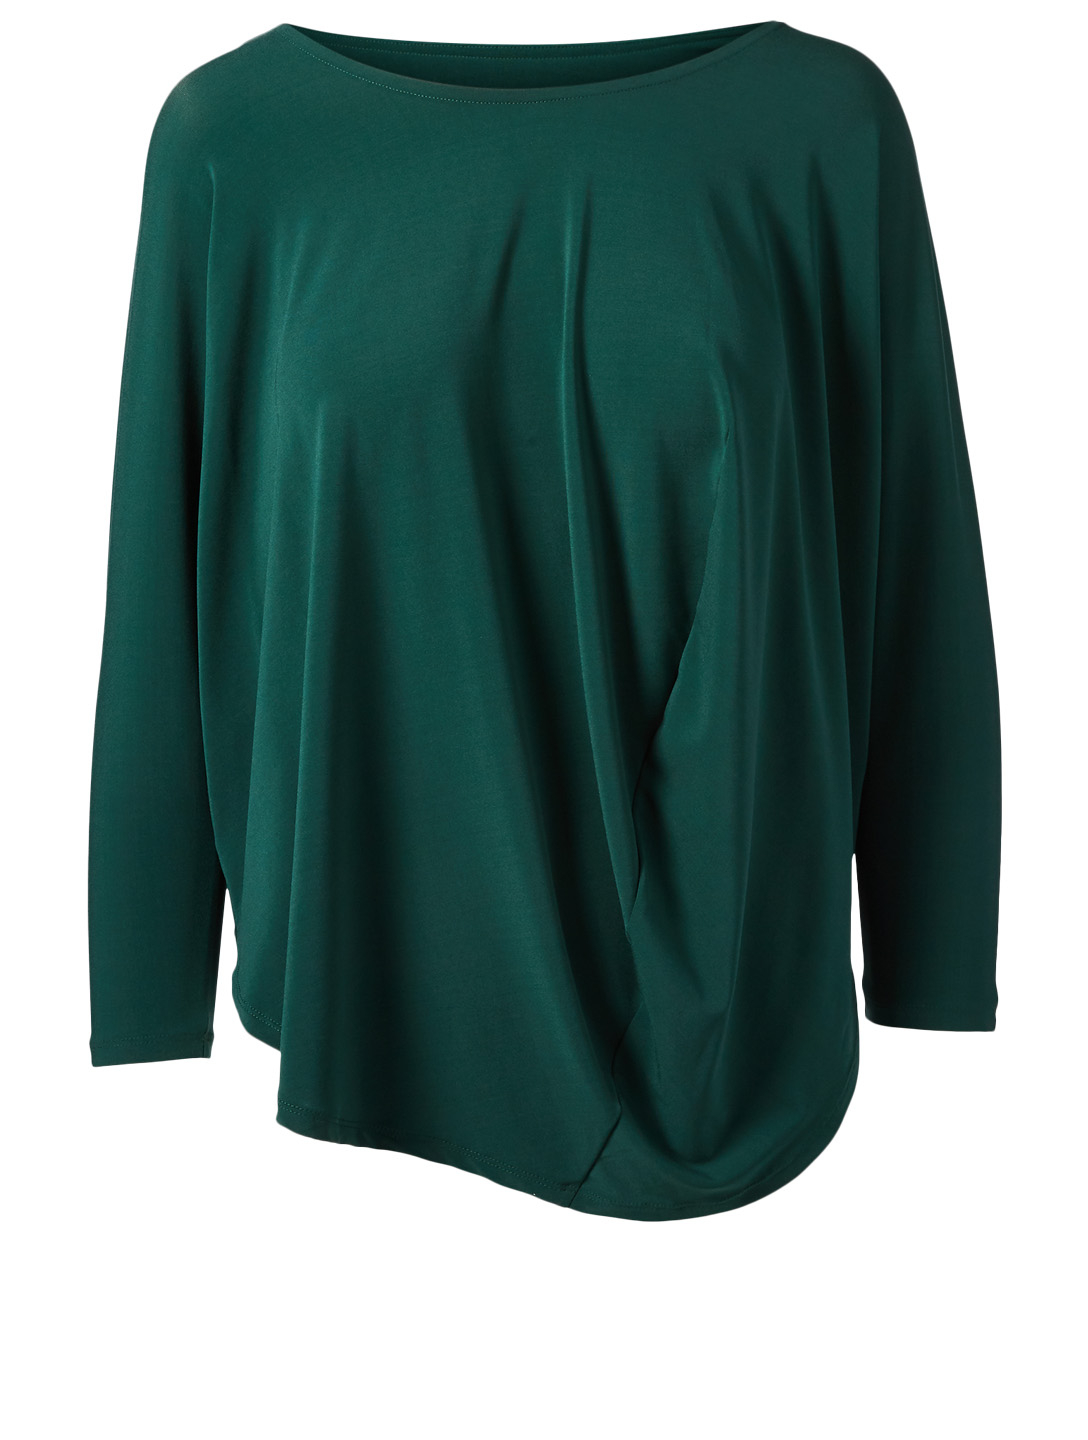 ISSEY MIYAKE Draped Jersey Long Sleeve Top Women's Green